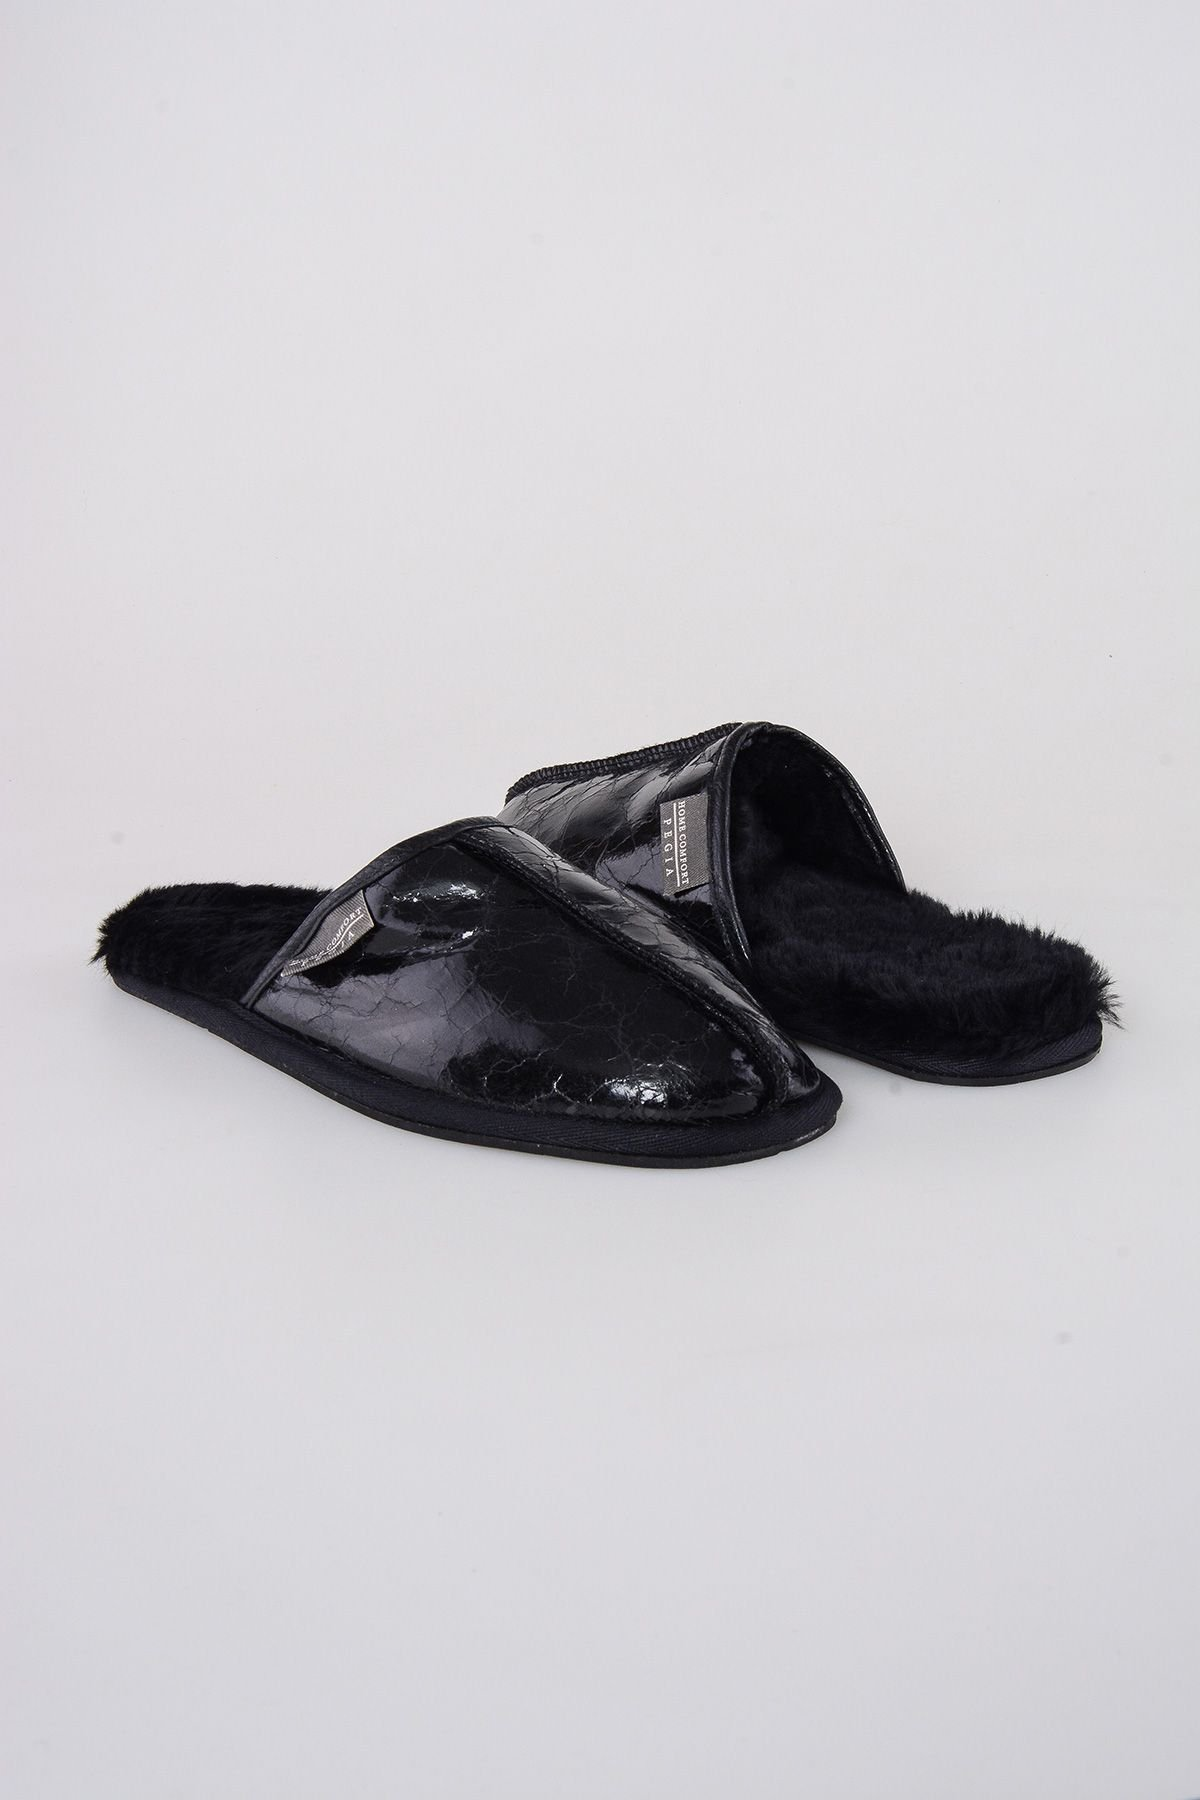 Pegia Shearling Men's Slippers 111007 Black